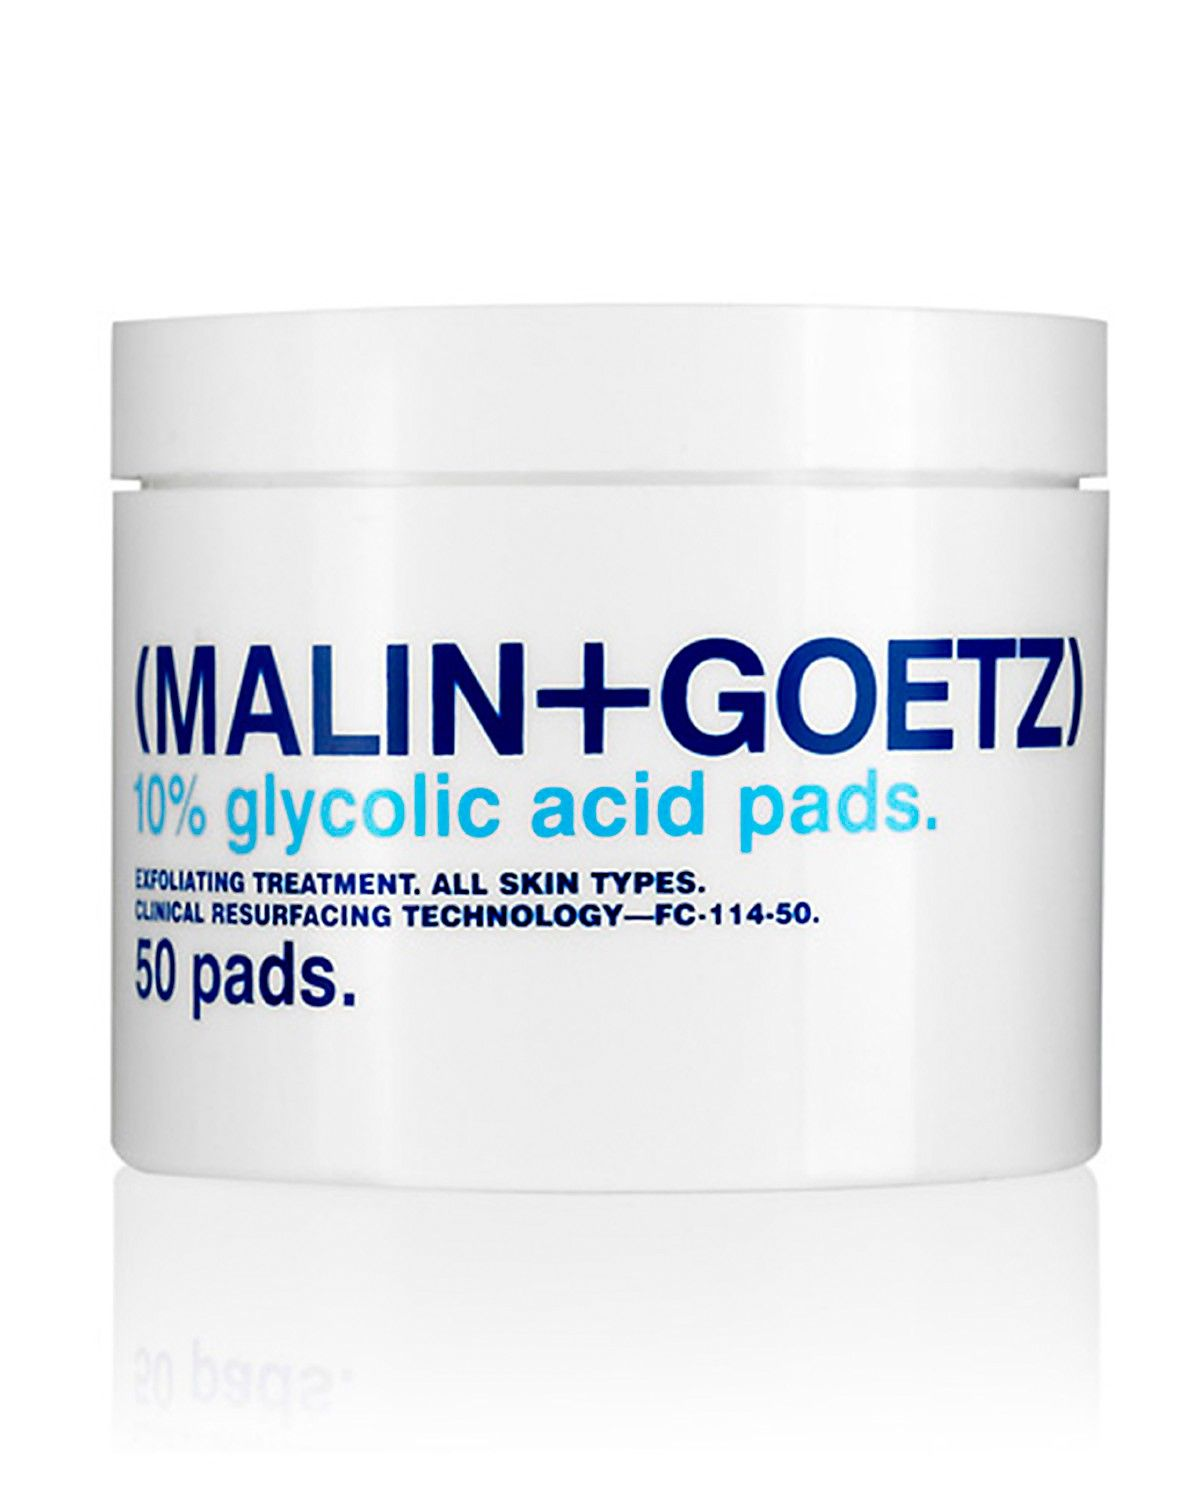 MALIN+GOETZ Glycolic Acid Pads ($48): The physician-grade glycolic acid on these pads works like a Mr. Clean Magic Eraser to thoroughly slough away dead skin. It brings glowy J.Lo-worthy skin to the surface and won't interfere with any of the acne treatments or anti-aging products in your regimen.